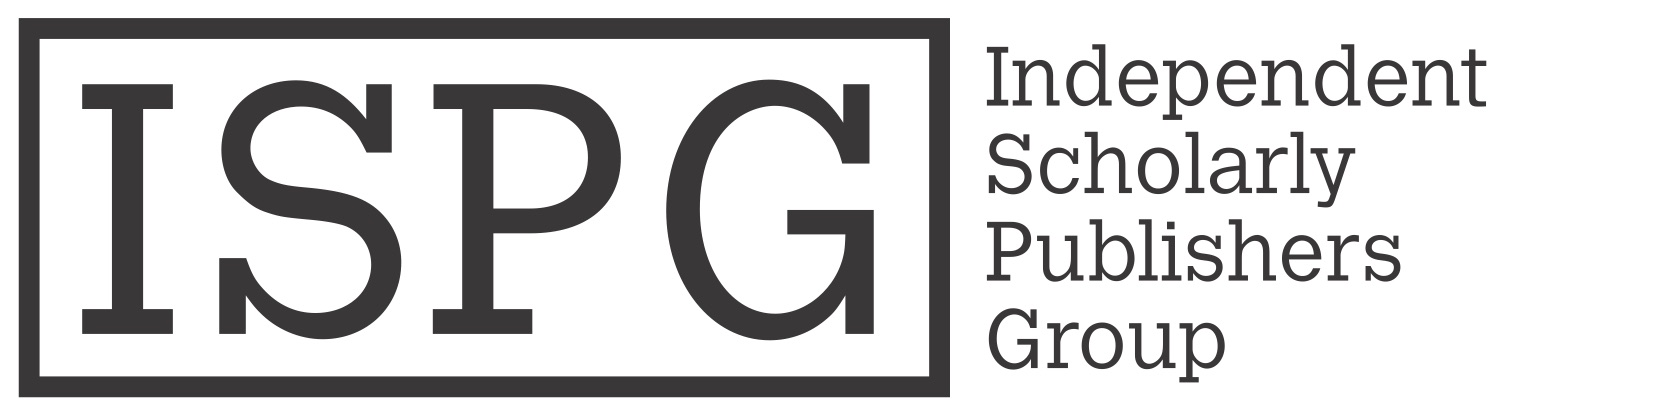 Independent Scholarly Publishers Group Offers Health Sciences and Life Sciences Journals